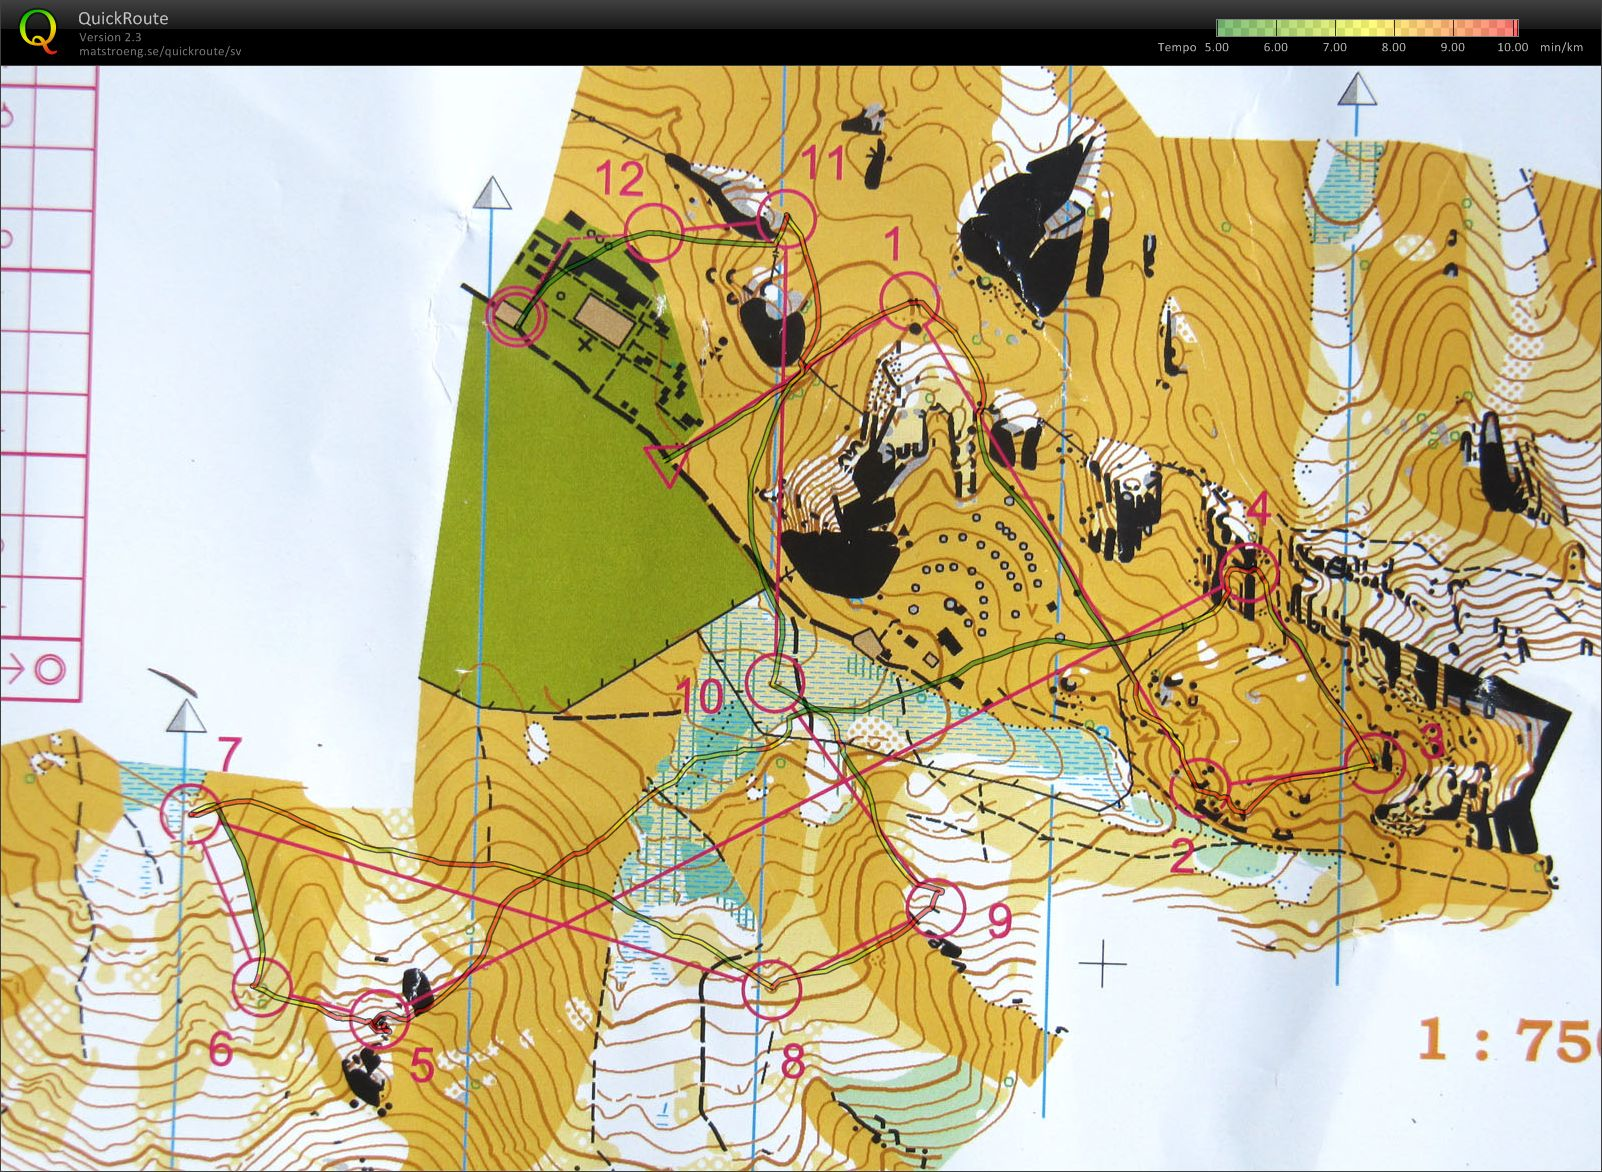 Orienteering map in Mongolia